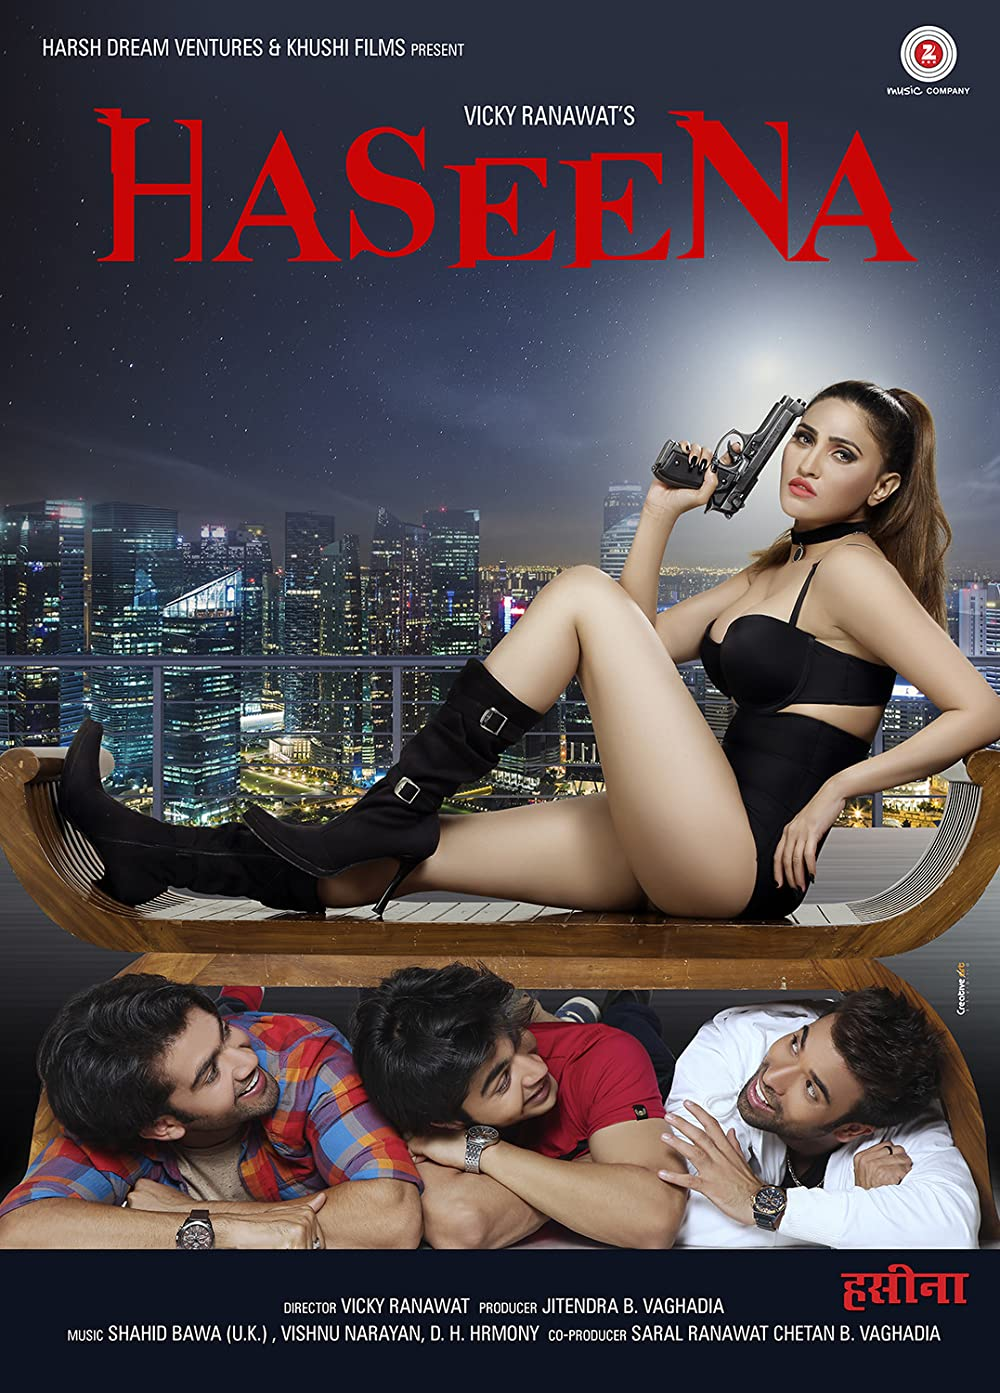 18+ Haseena 2018 Hindi 720p HDRip x264 750MB